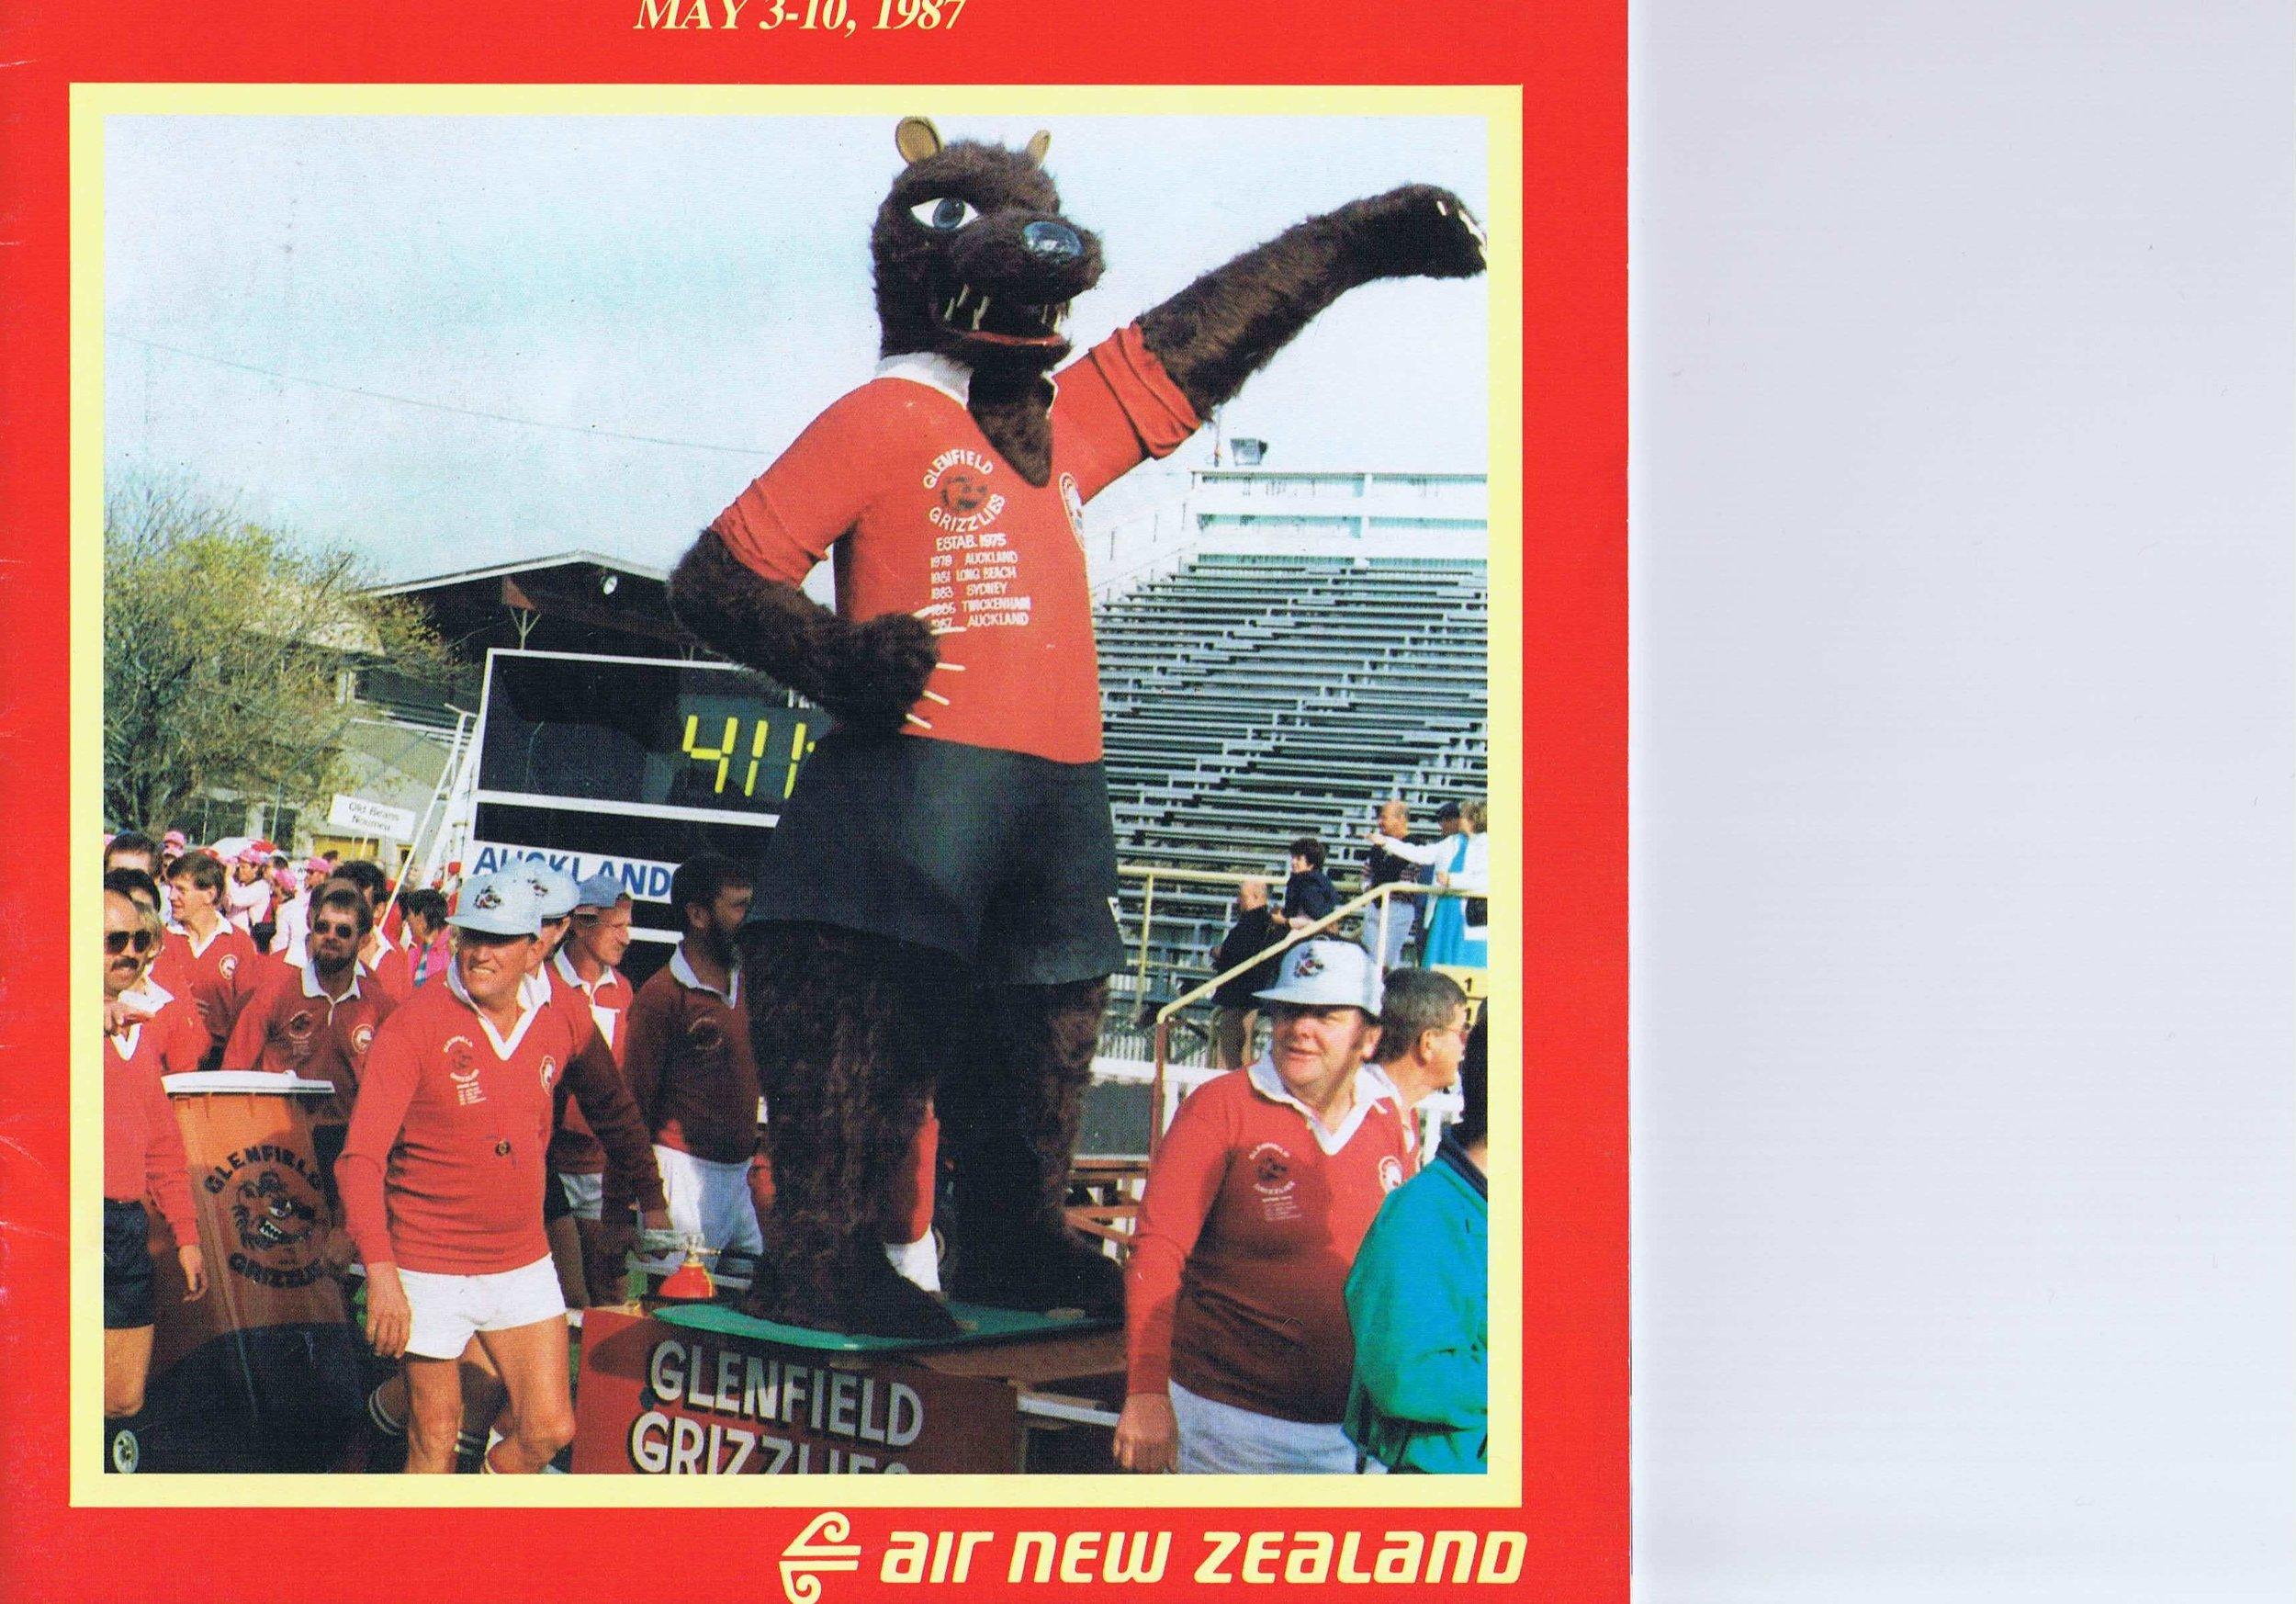 Auckland - now that's a mascot